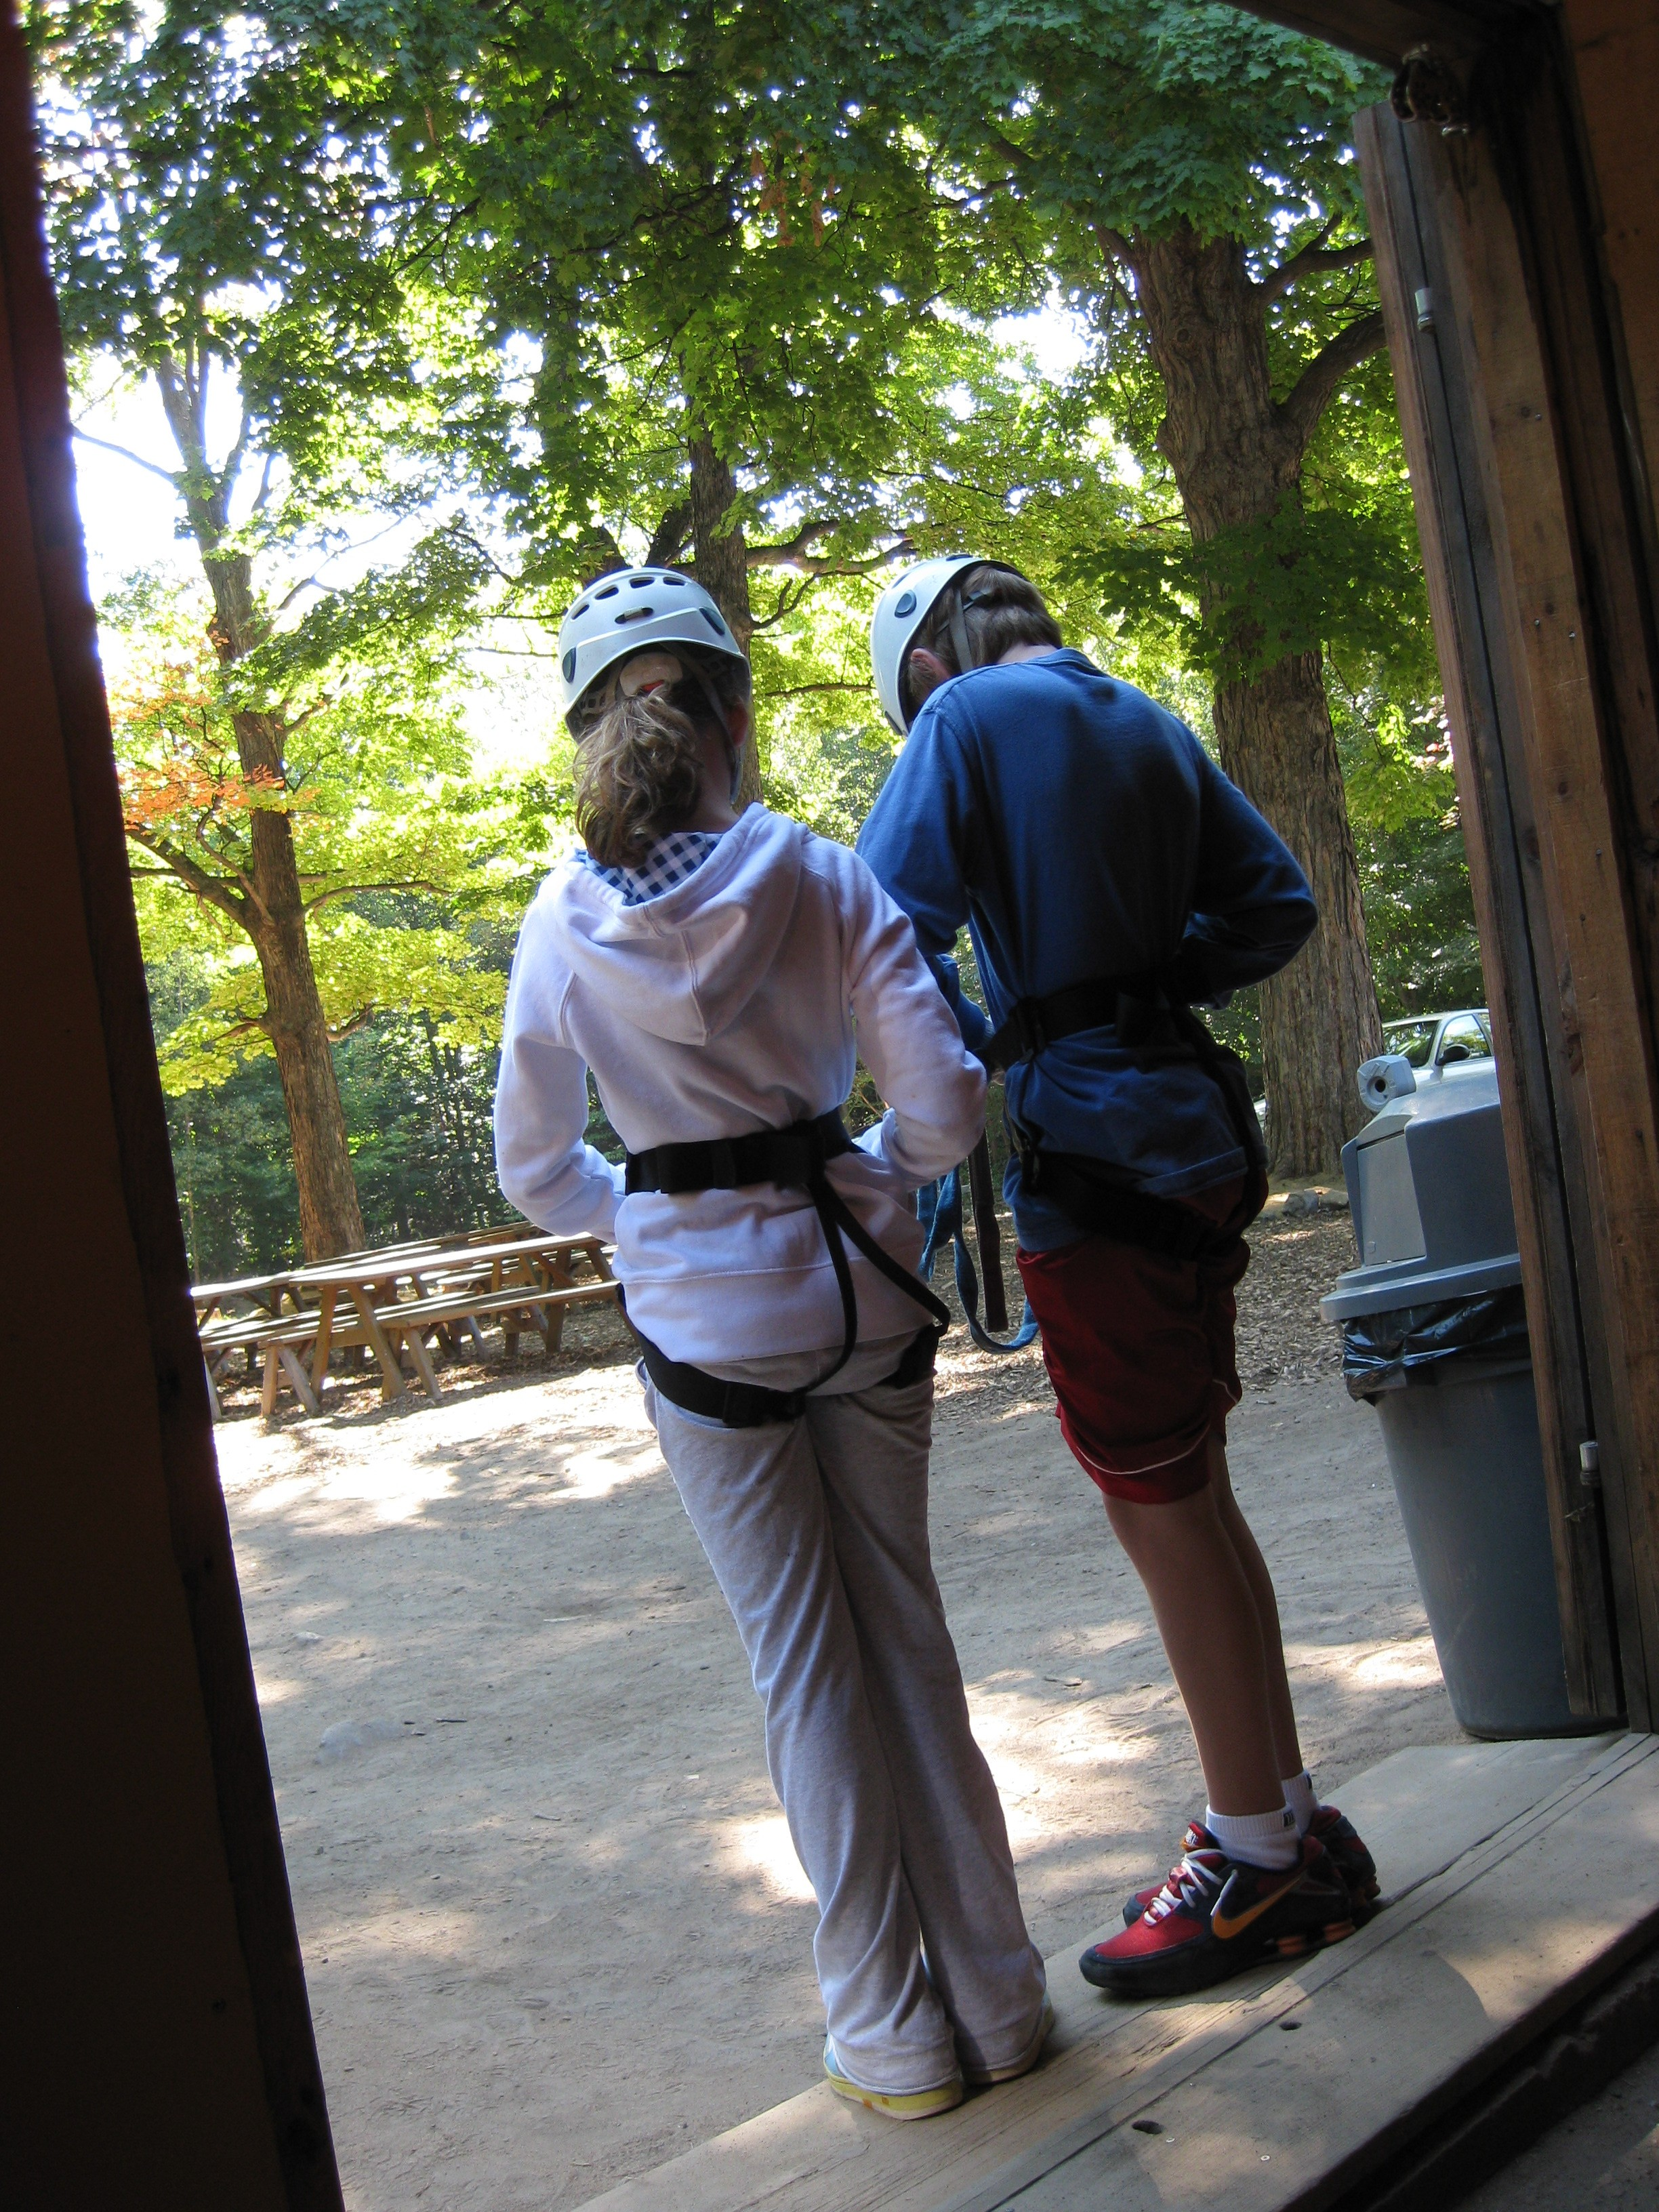 The twiblings prepare for their first ziplining experience.